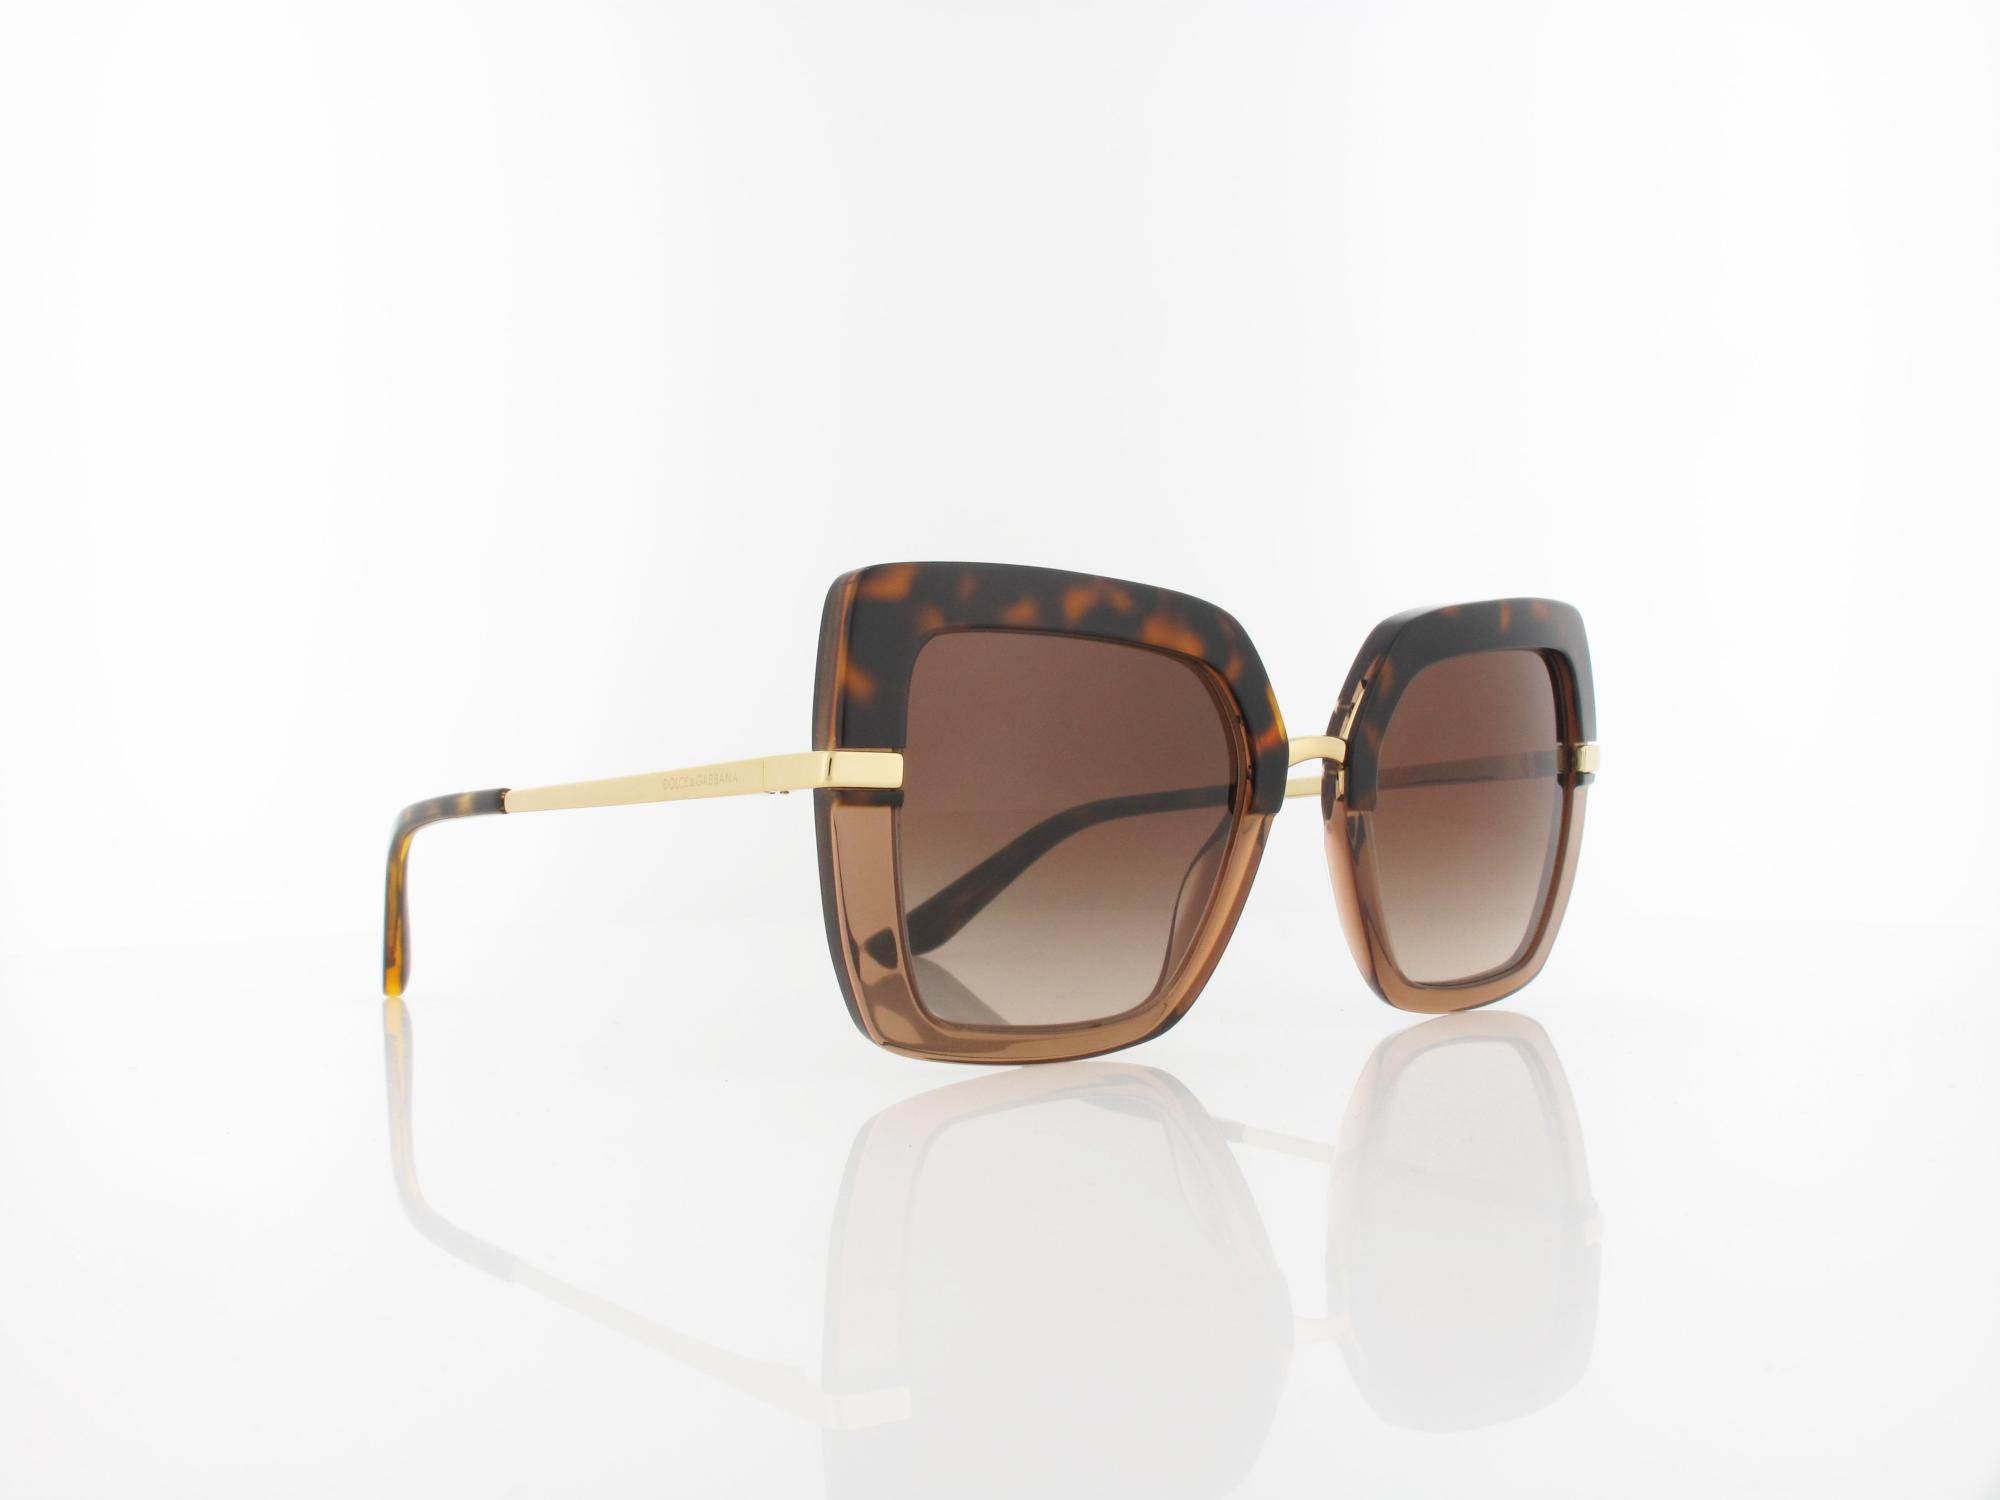 Dolce&Gabbana | DG4373 325613 52 | top havana on transp brown / brown gradient